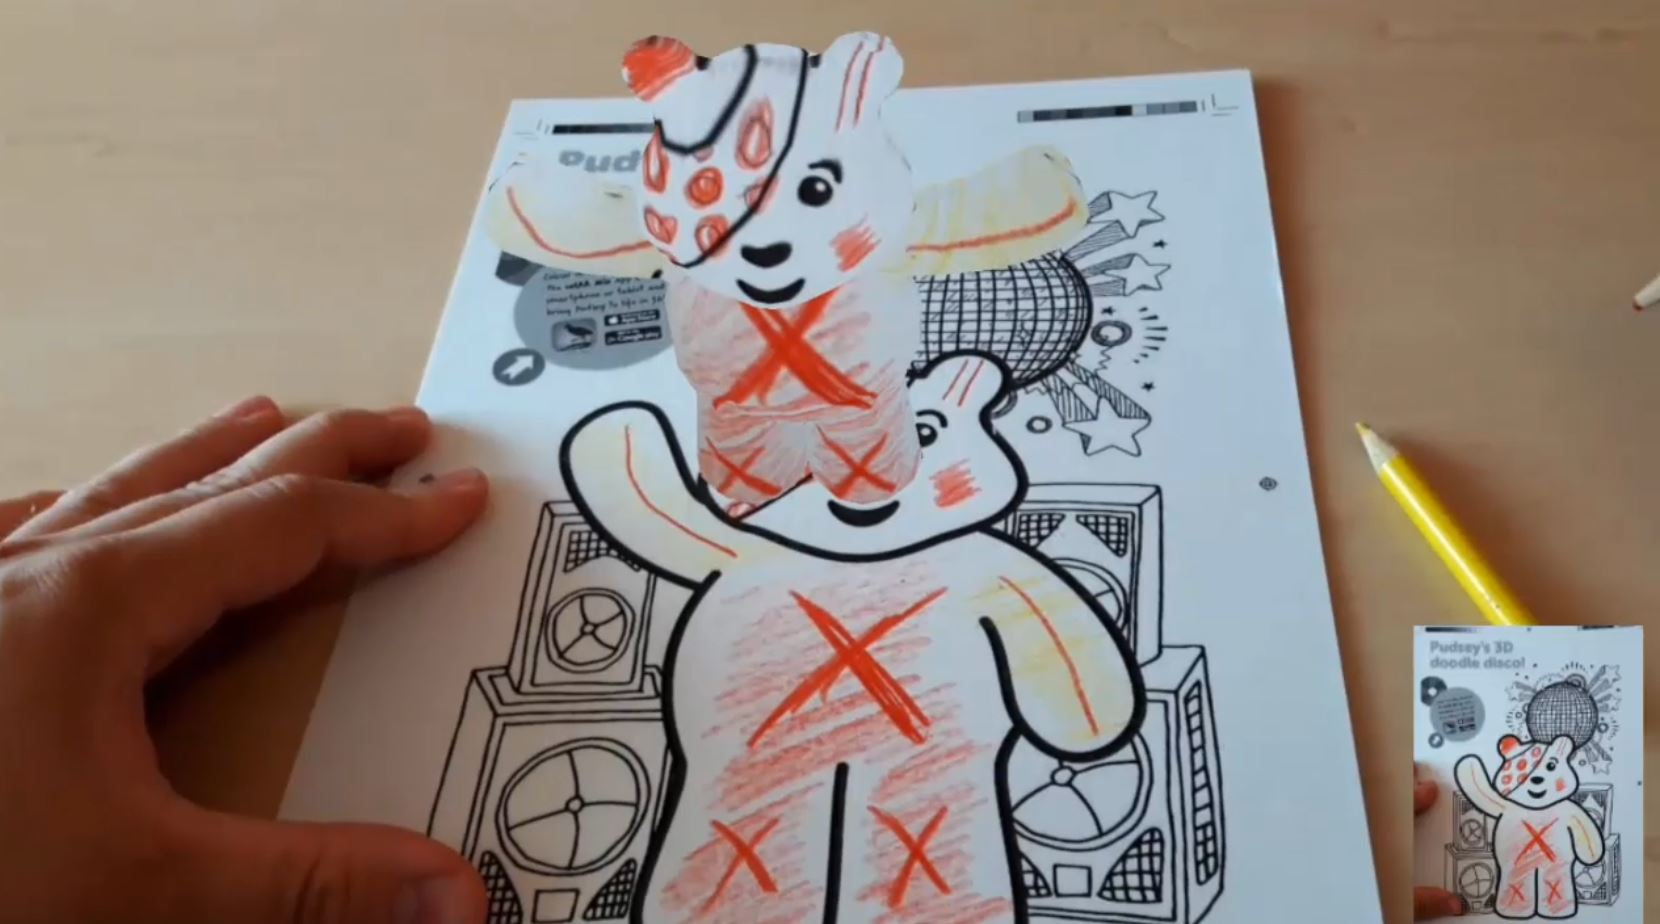 augmented reality coloring pages - demo augmented reality page coloring app mimicking